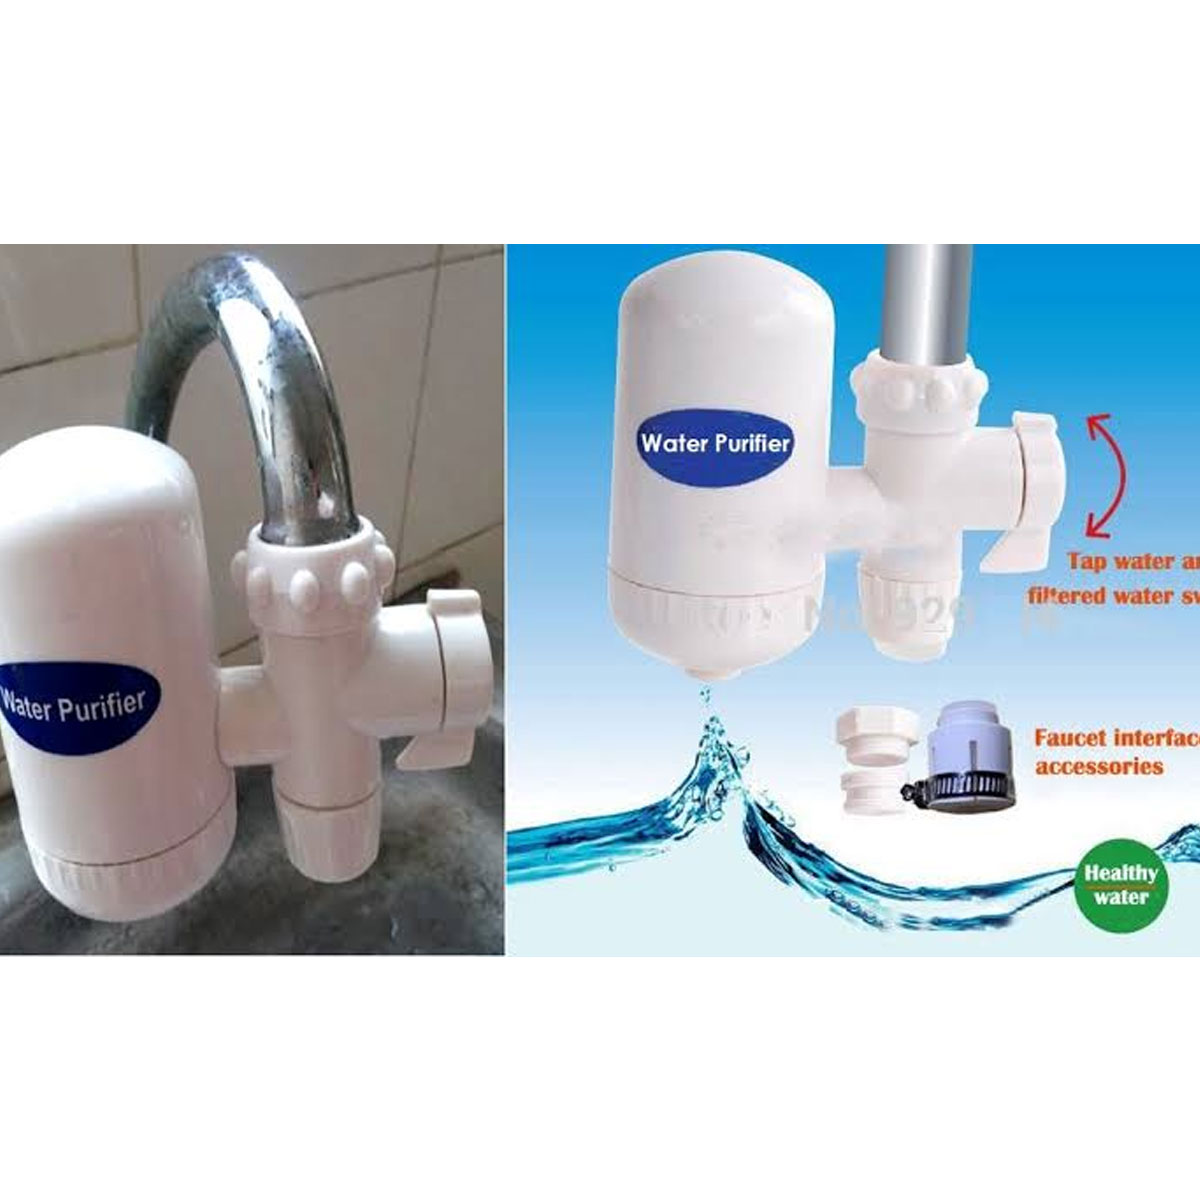 Environment - Friendly Instant Water Purifier For Home & Office Gallery Image 1